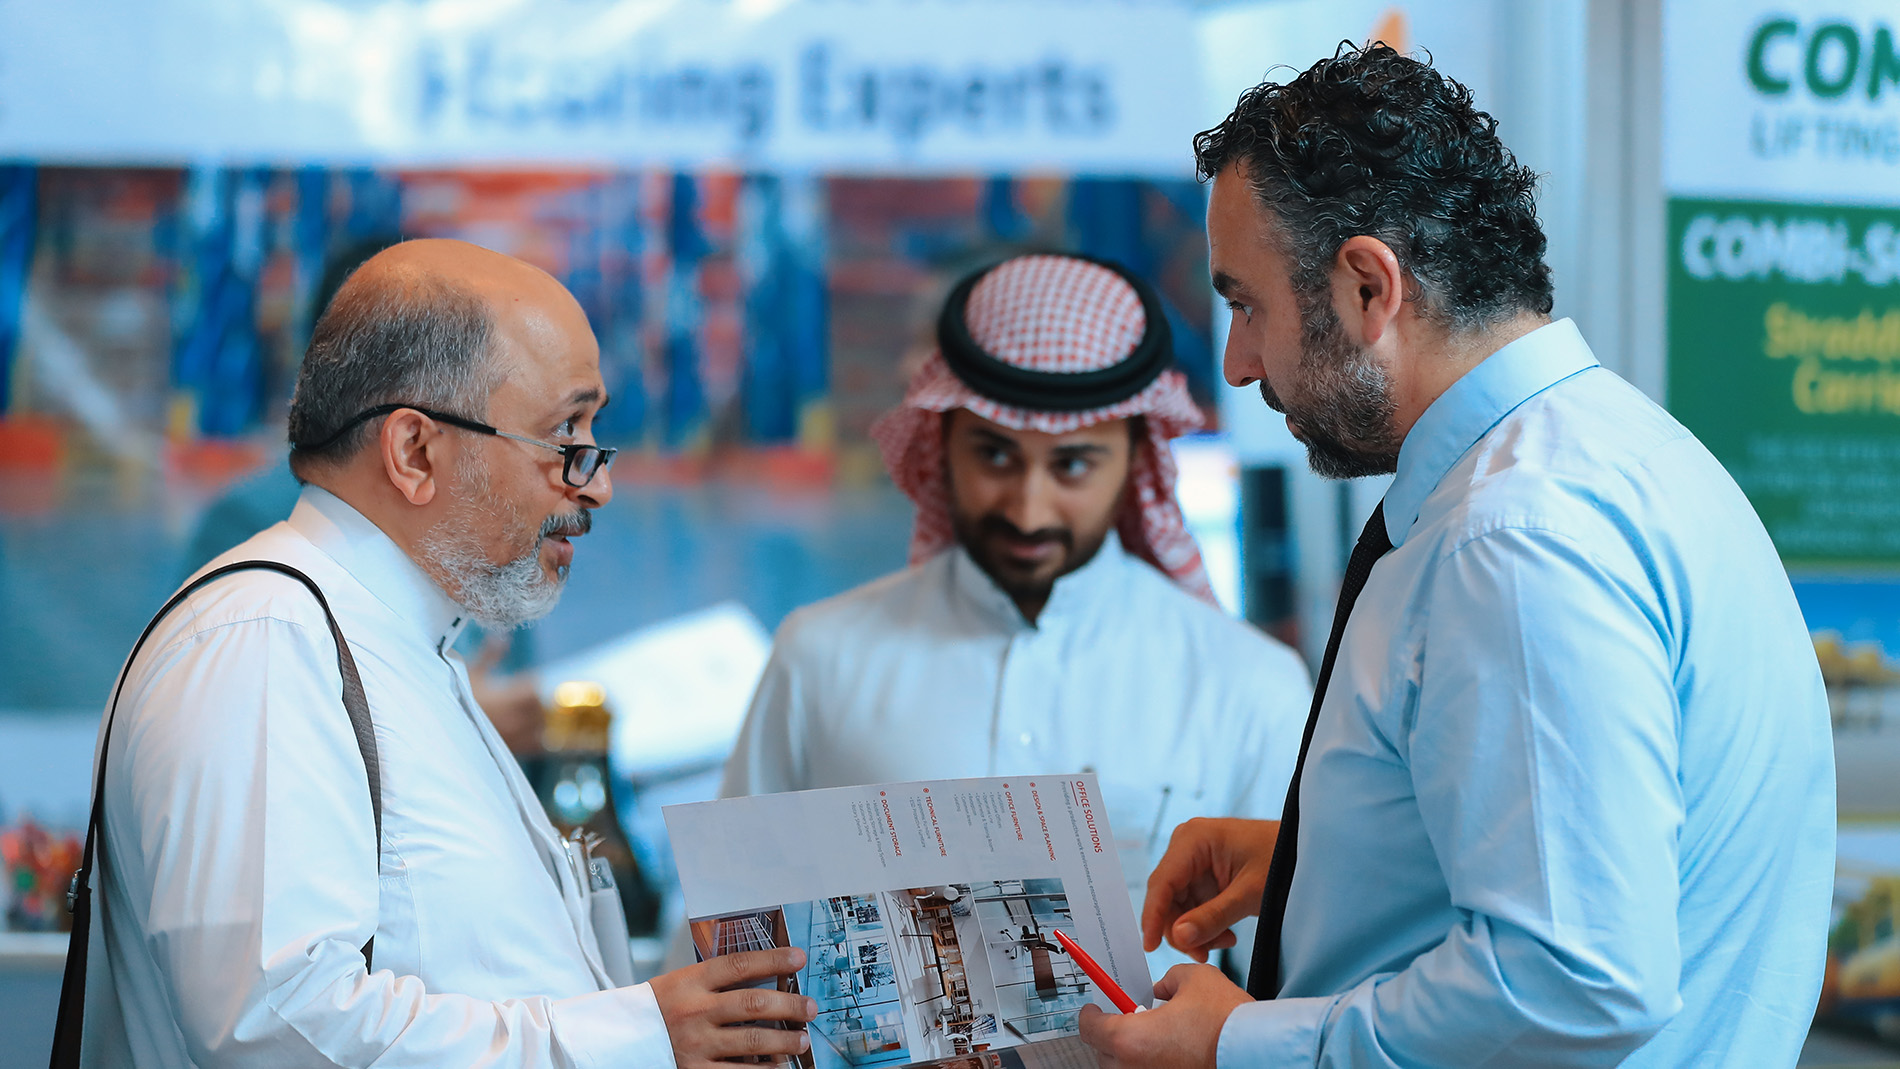 Materials Handling Saudi Arabia - Exhibitor interaction